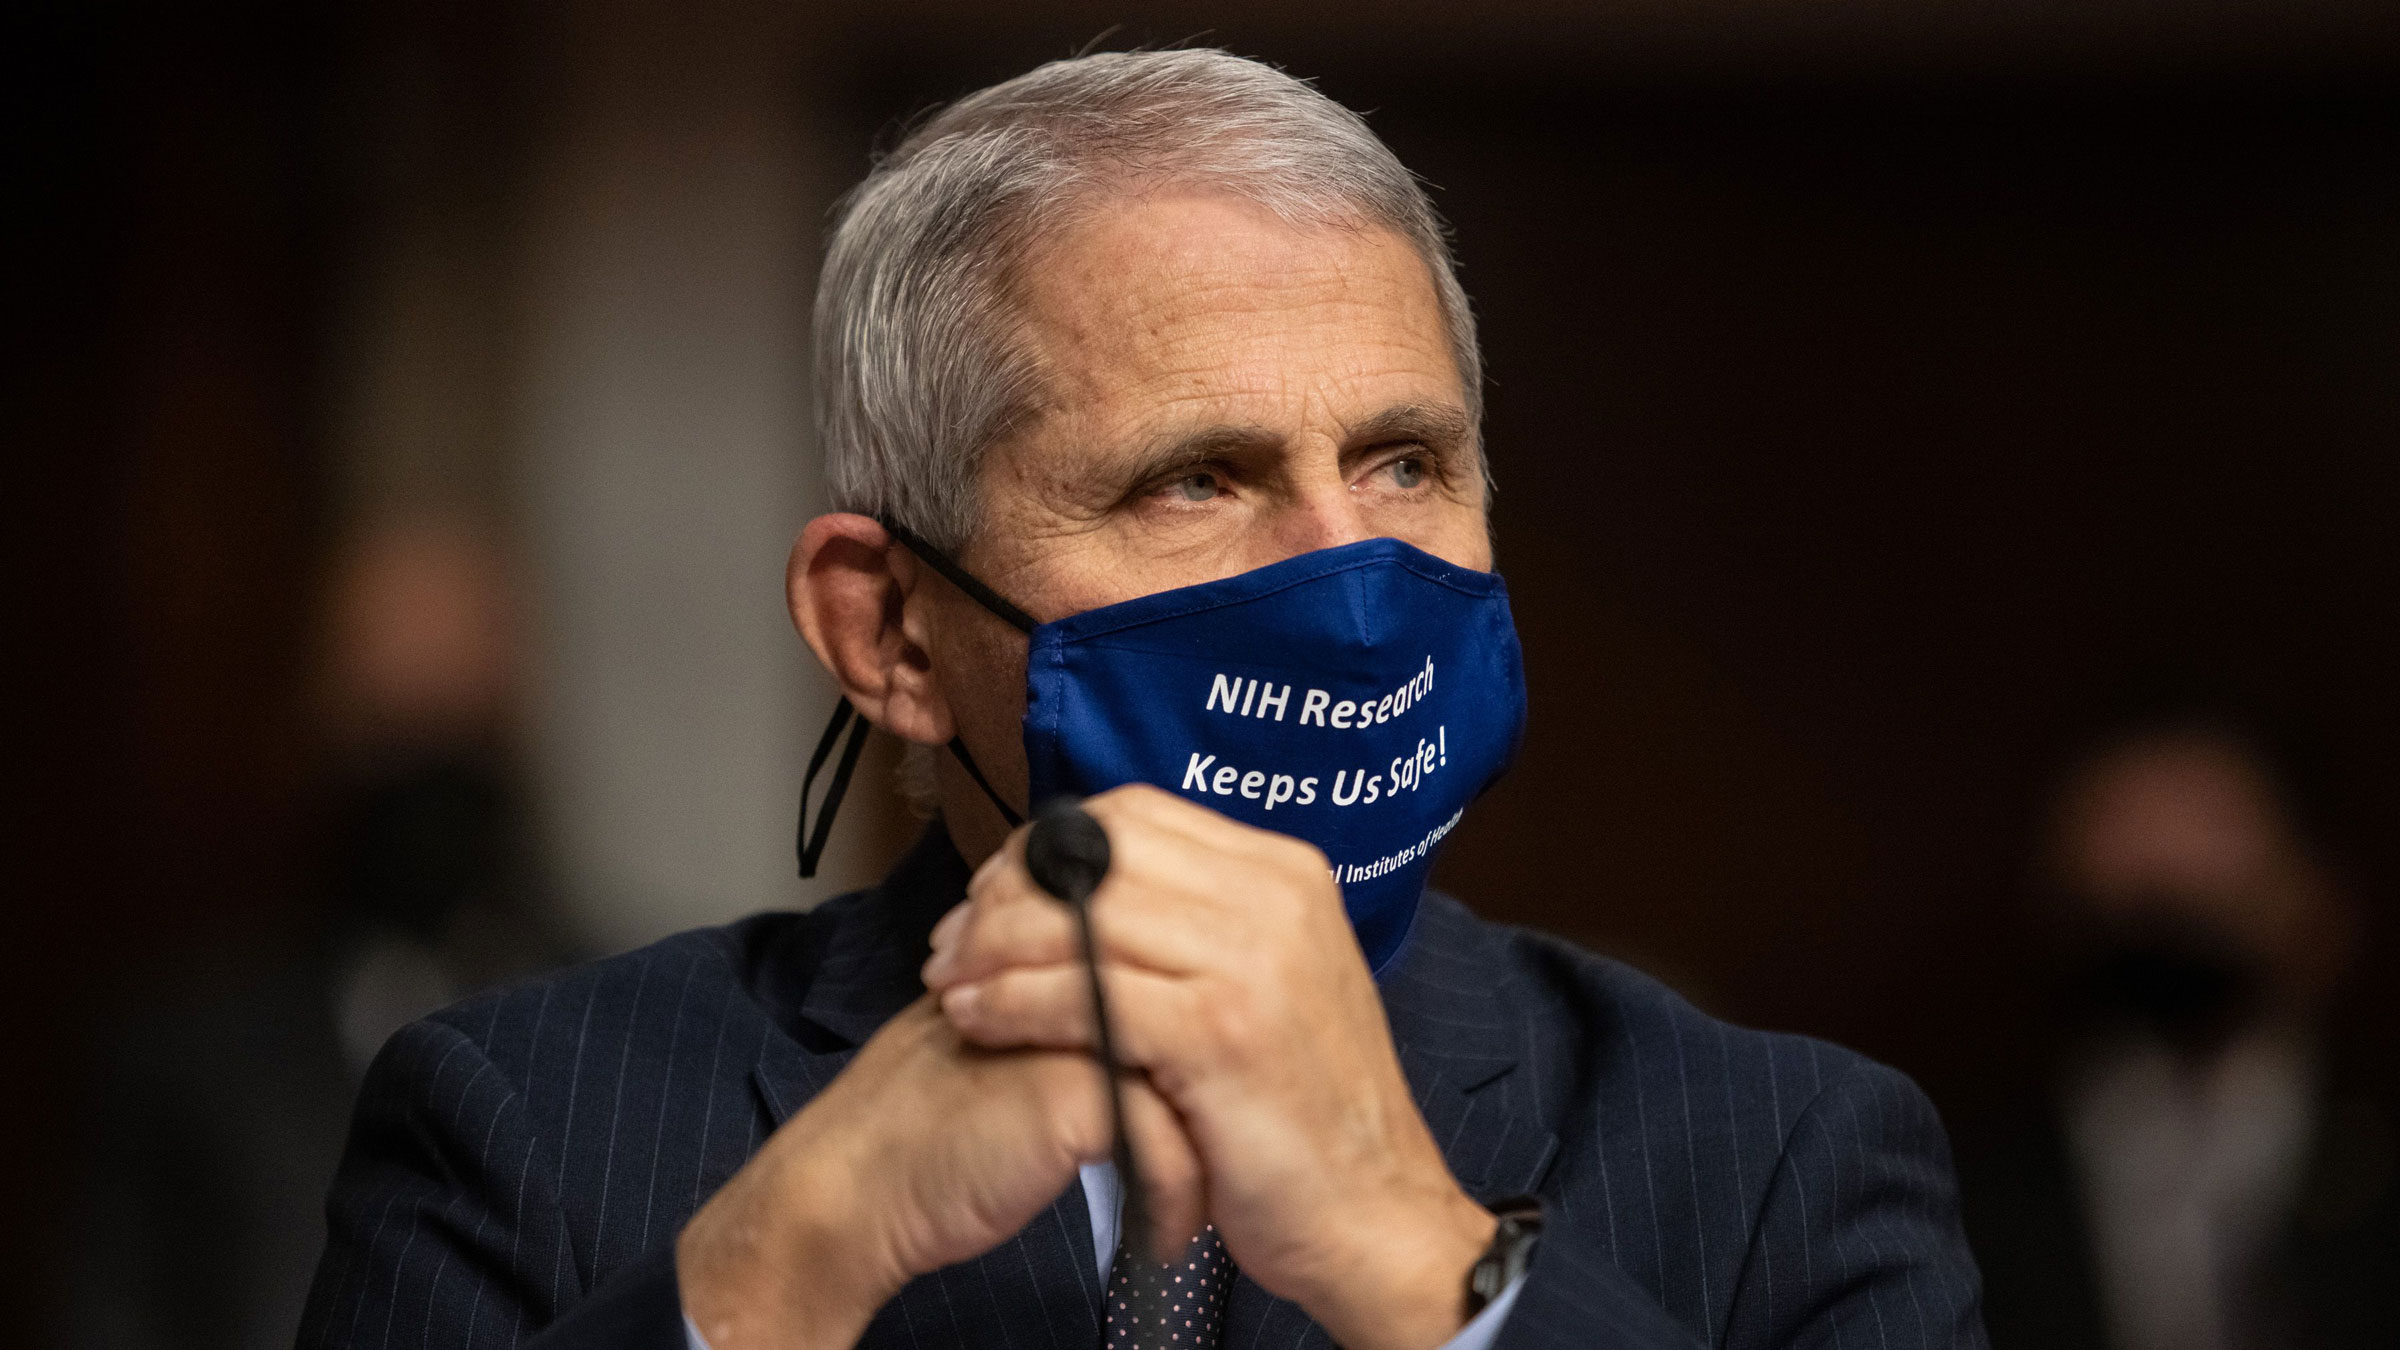 Dr. Anthony Fauci testifies during a Senate committee hearing in September.